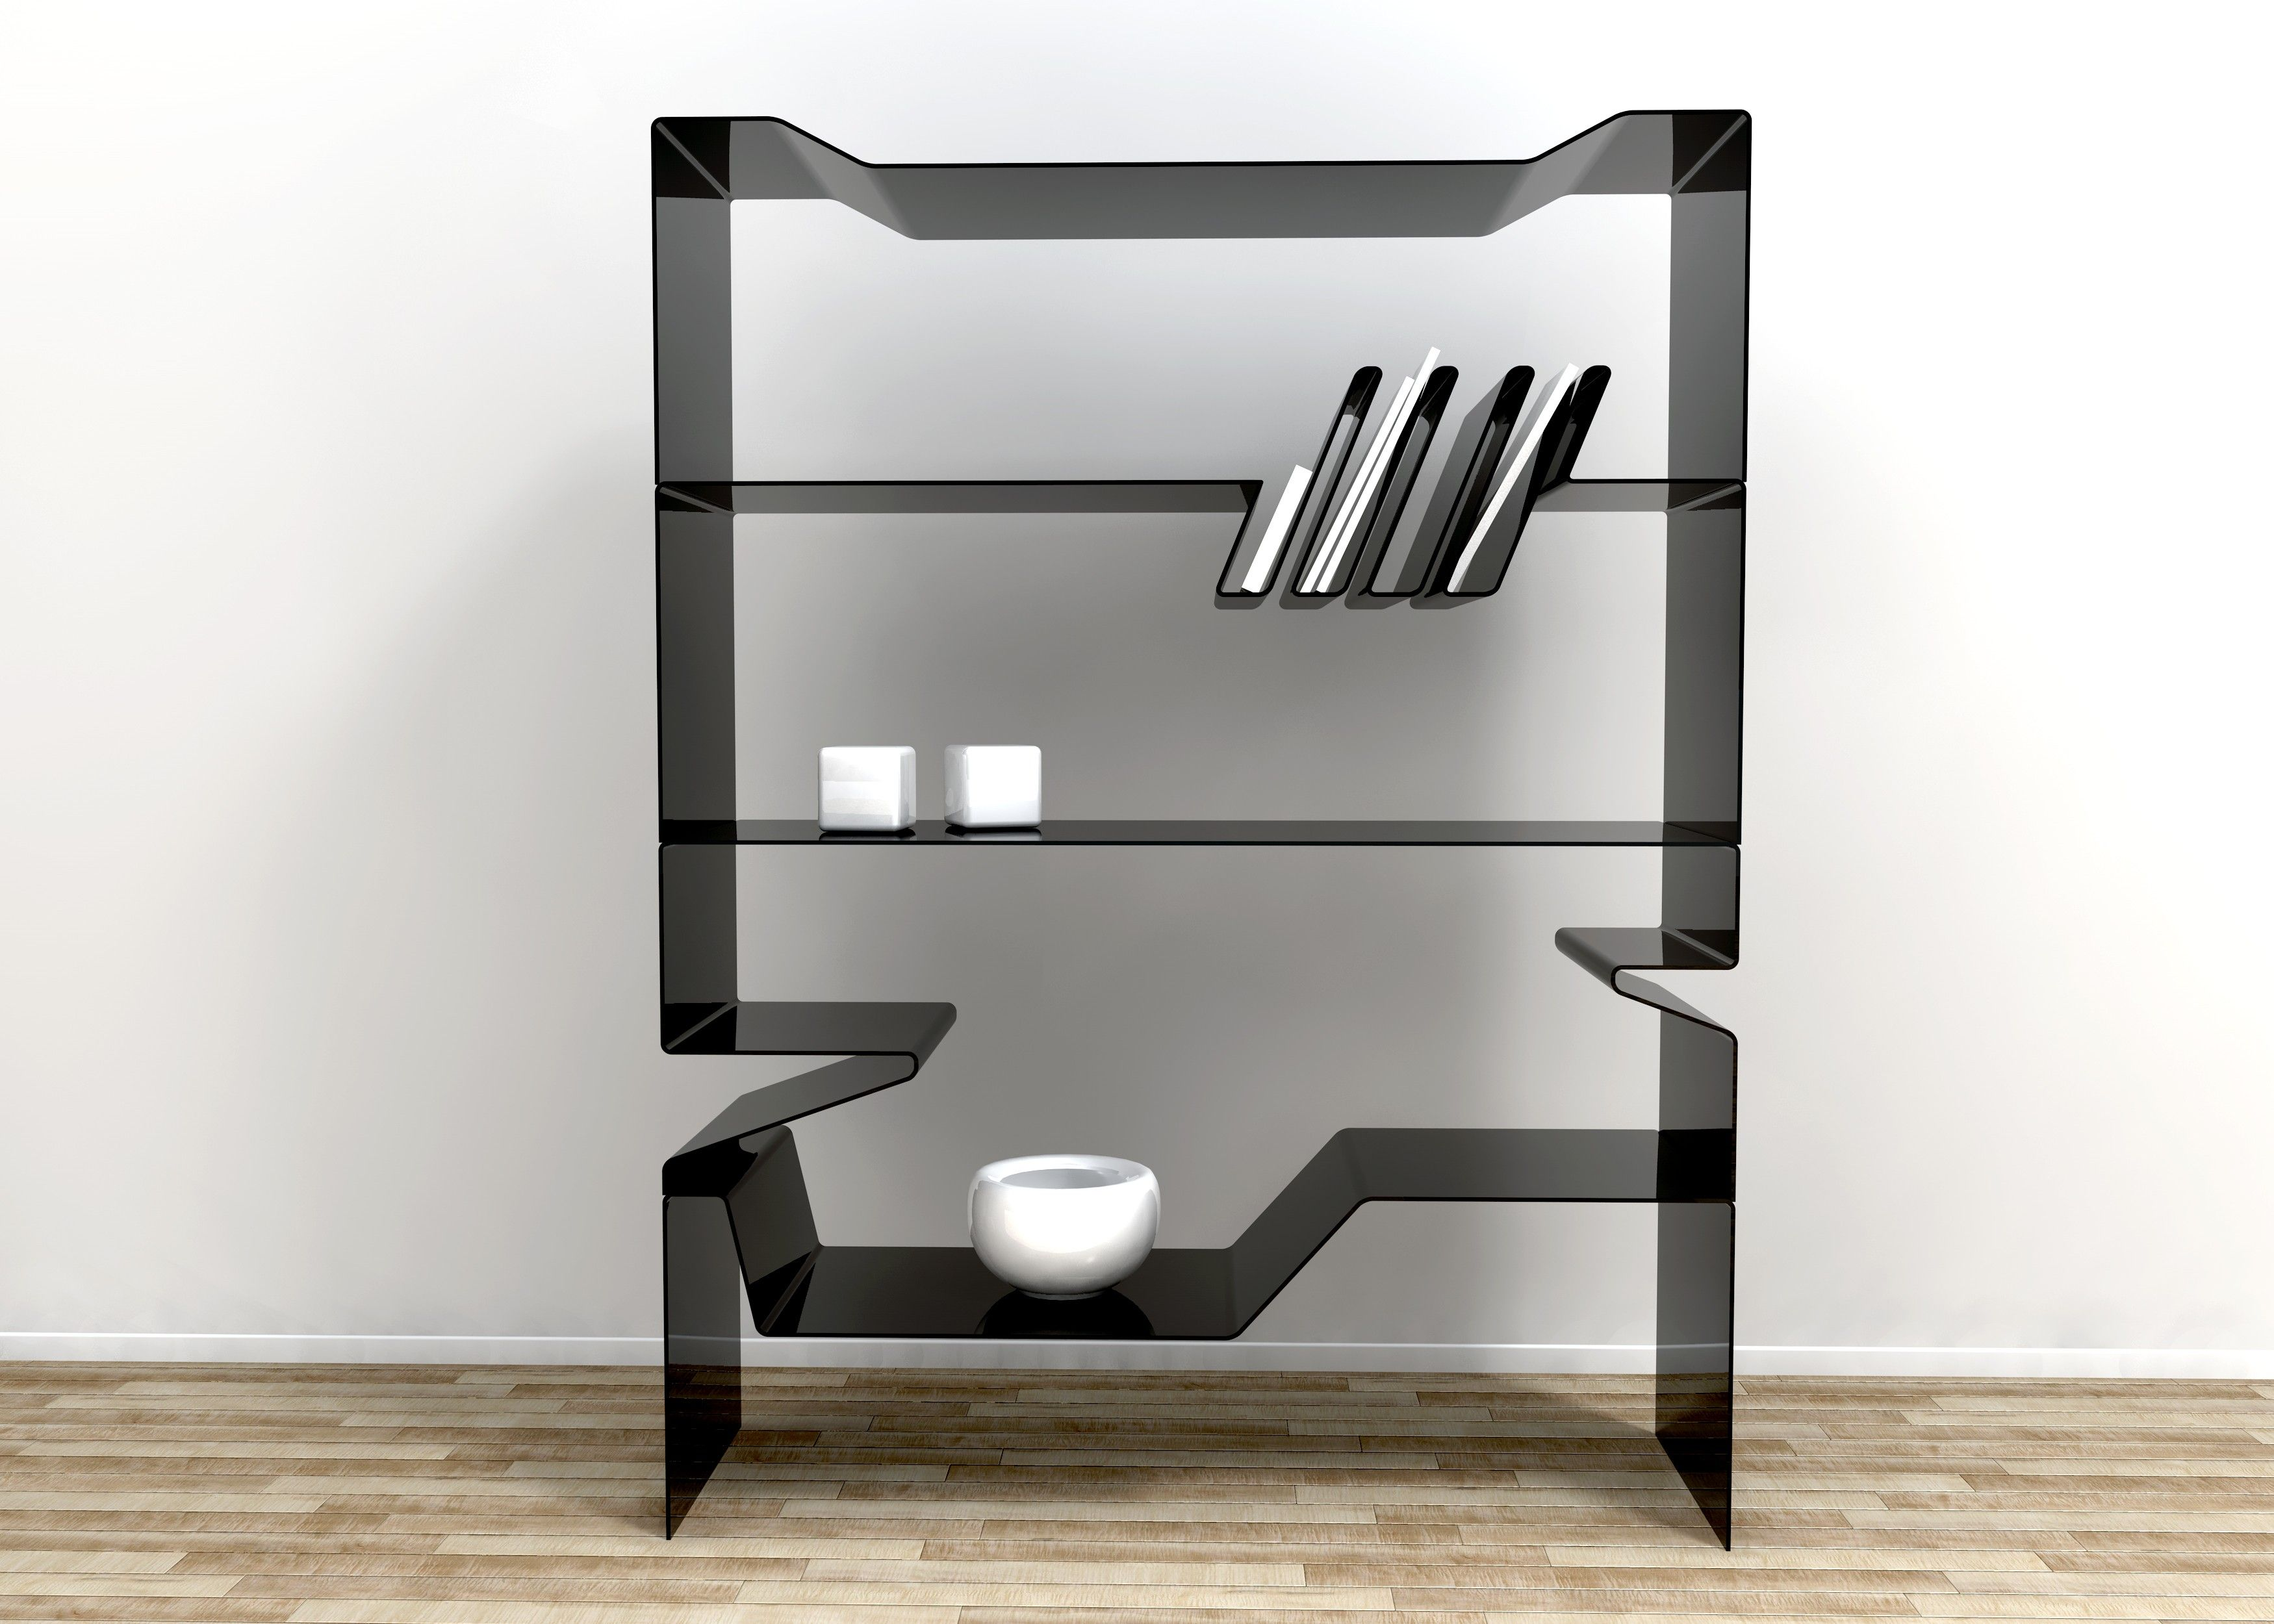 Furniture U0026 Accessoris,Glamorous Hanging Shelving Systems Design Ideas With  Unusual Black Tone Also Glass